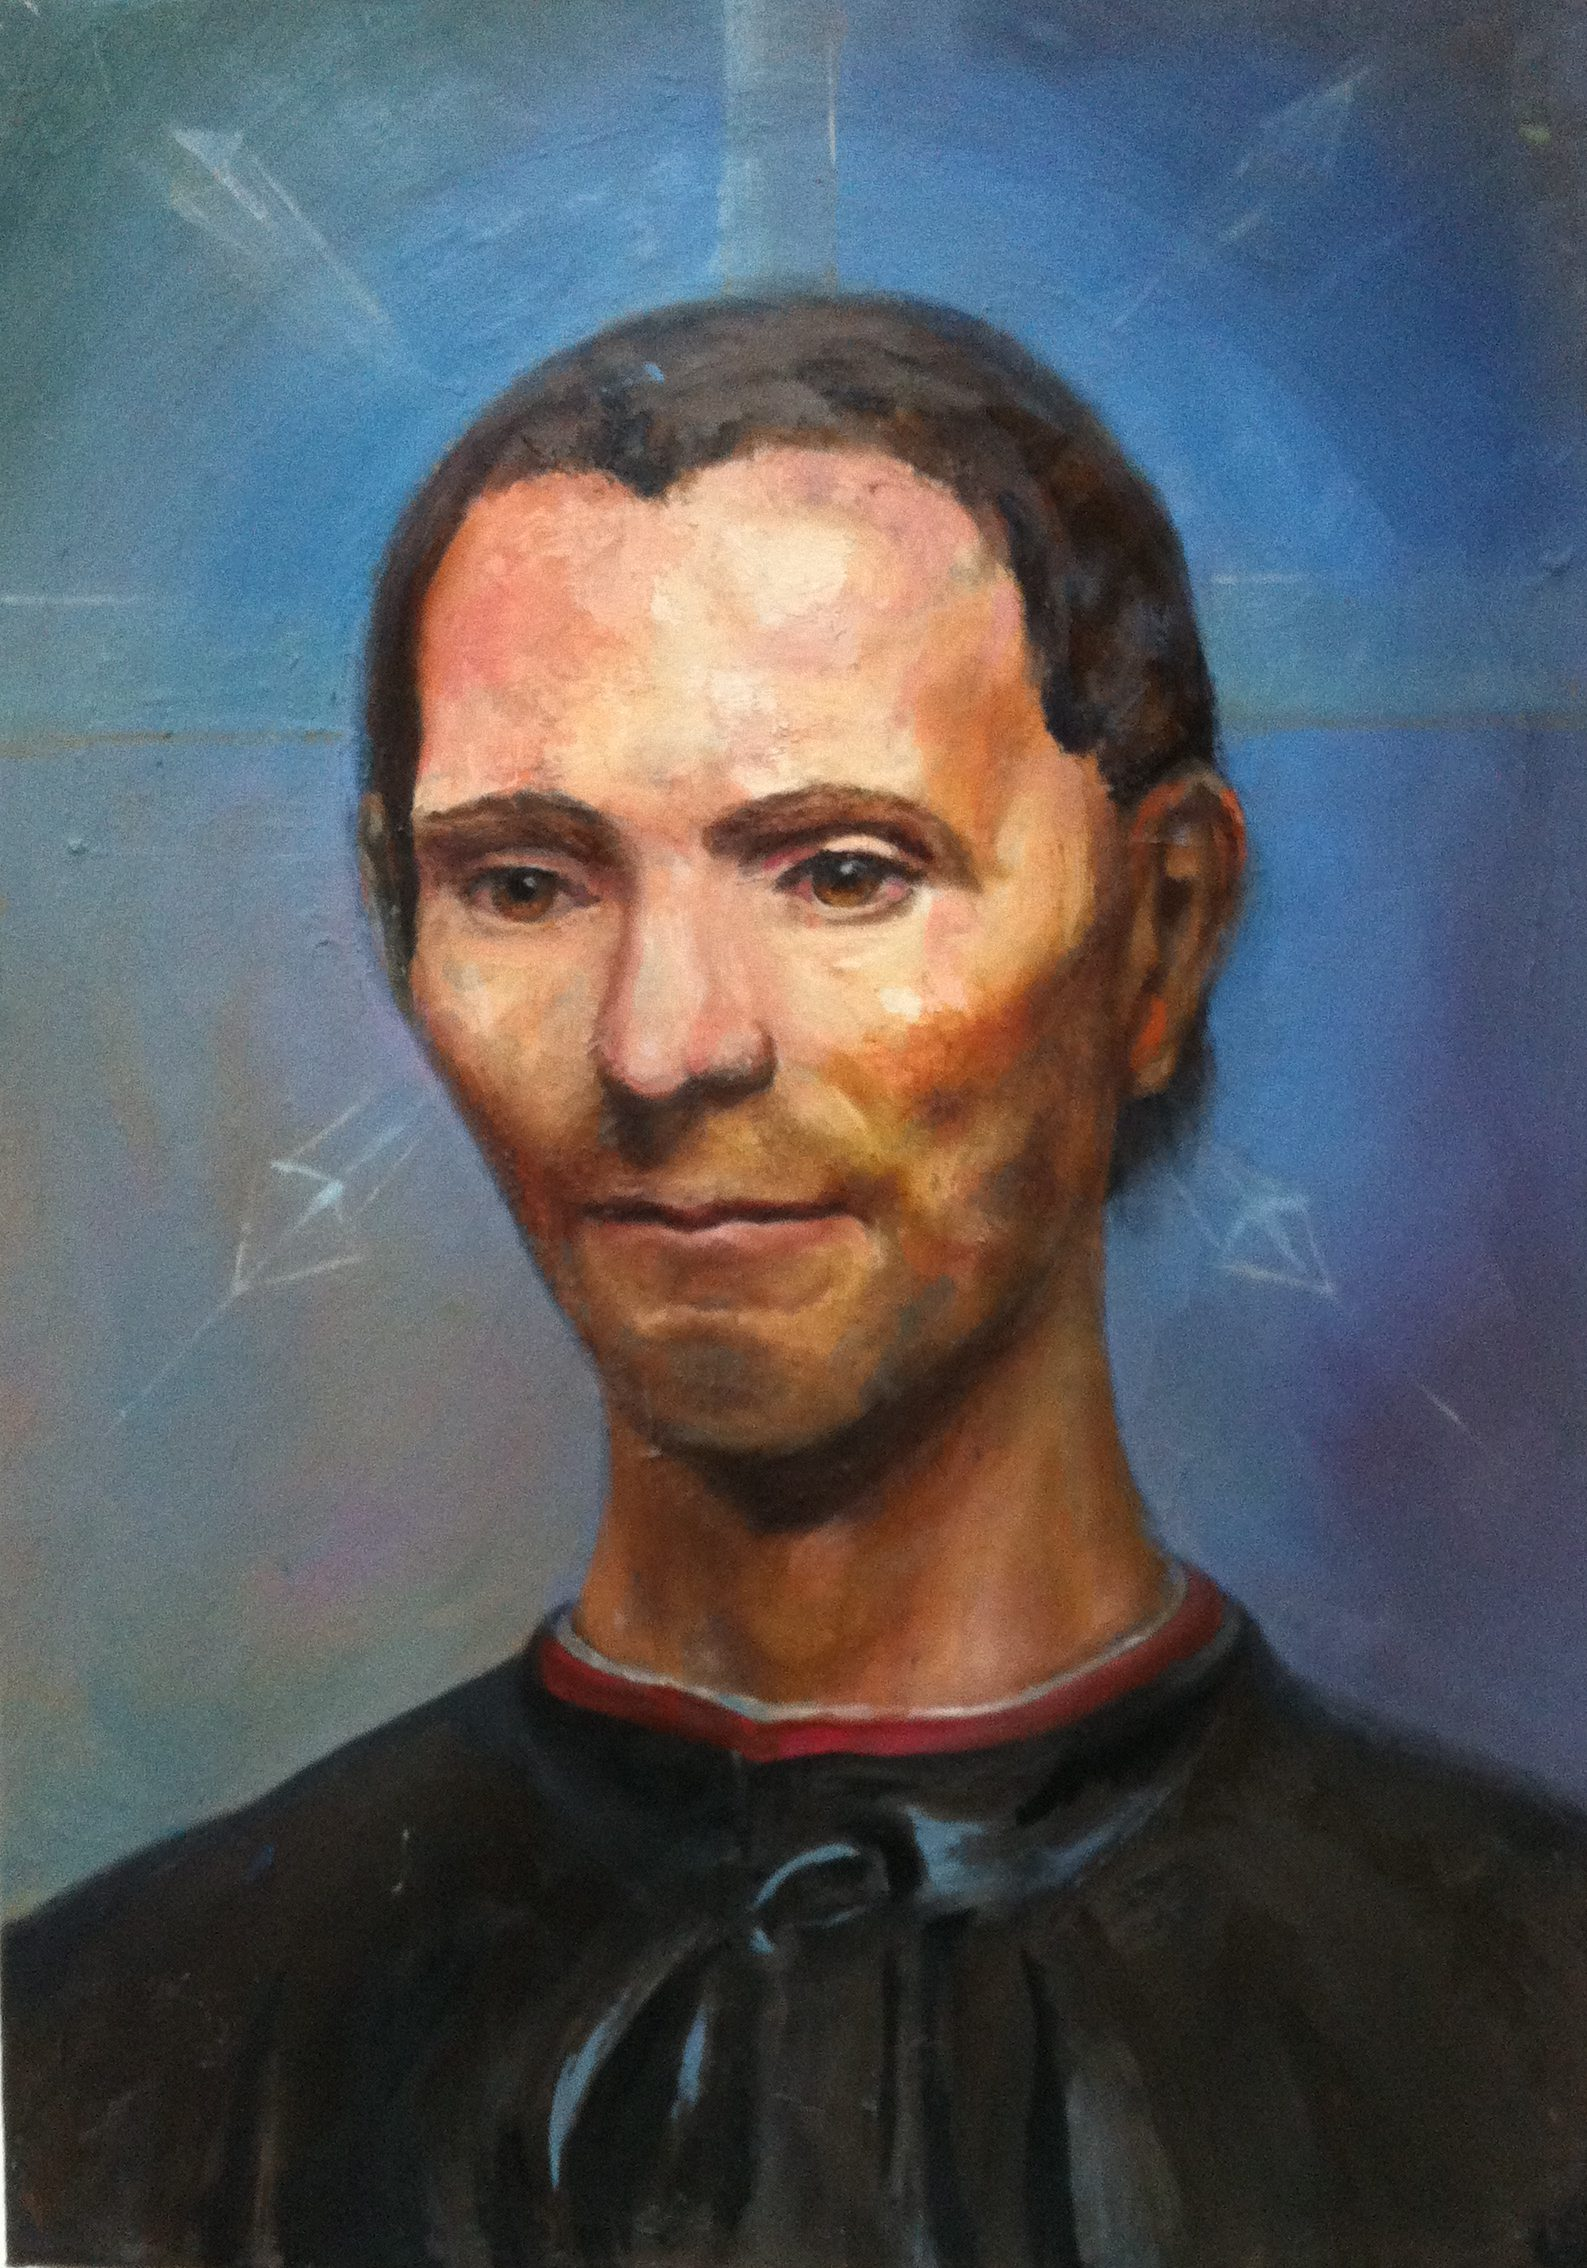 niccoló machiavelli - oil portrait by cornelia es said